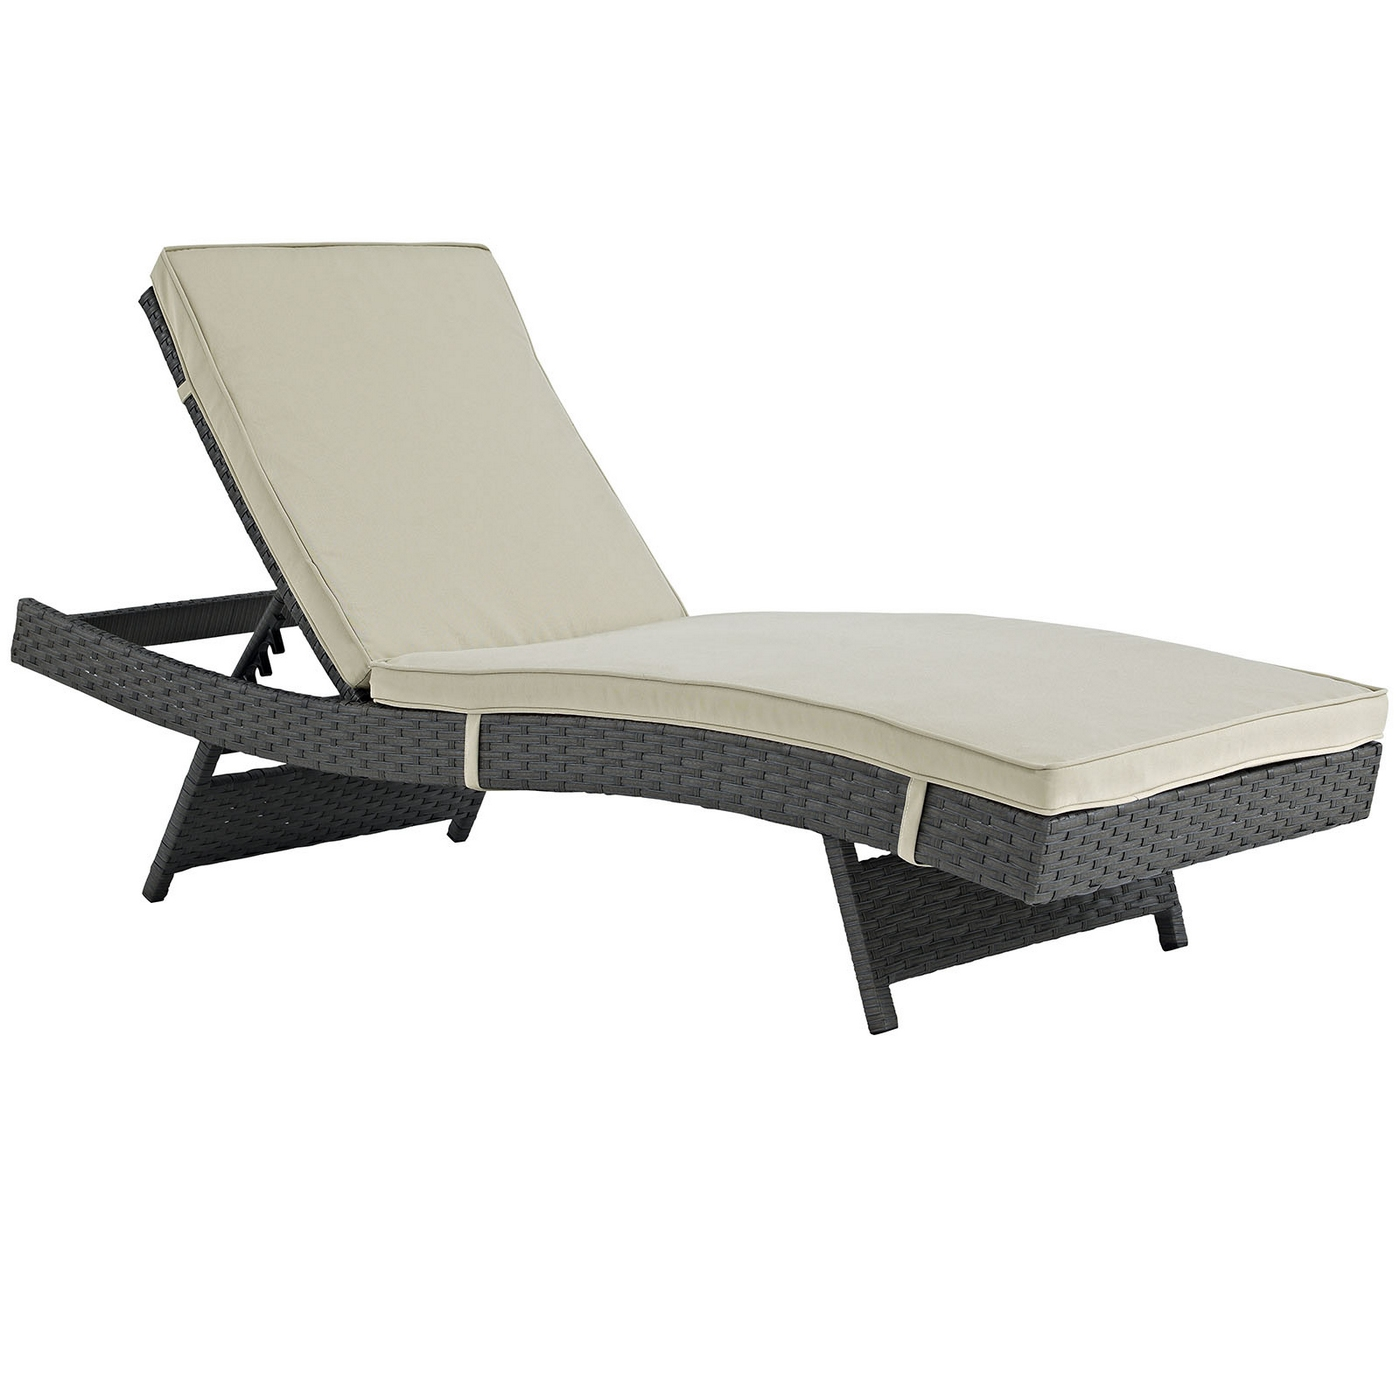 Sojourn modern outdoor patio sunbrella chaise w cushion for 23 w outdoor cushion for chaise